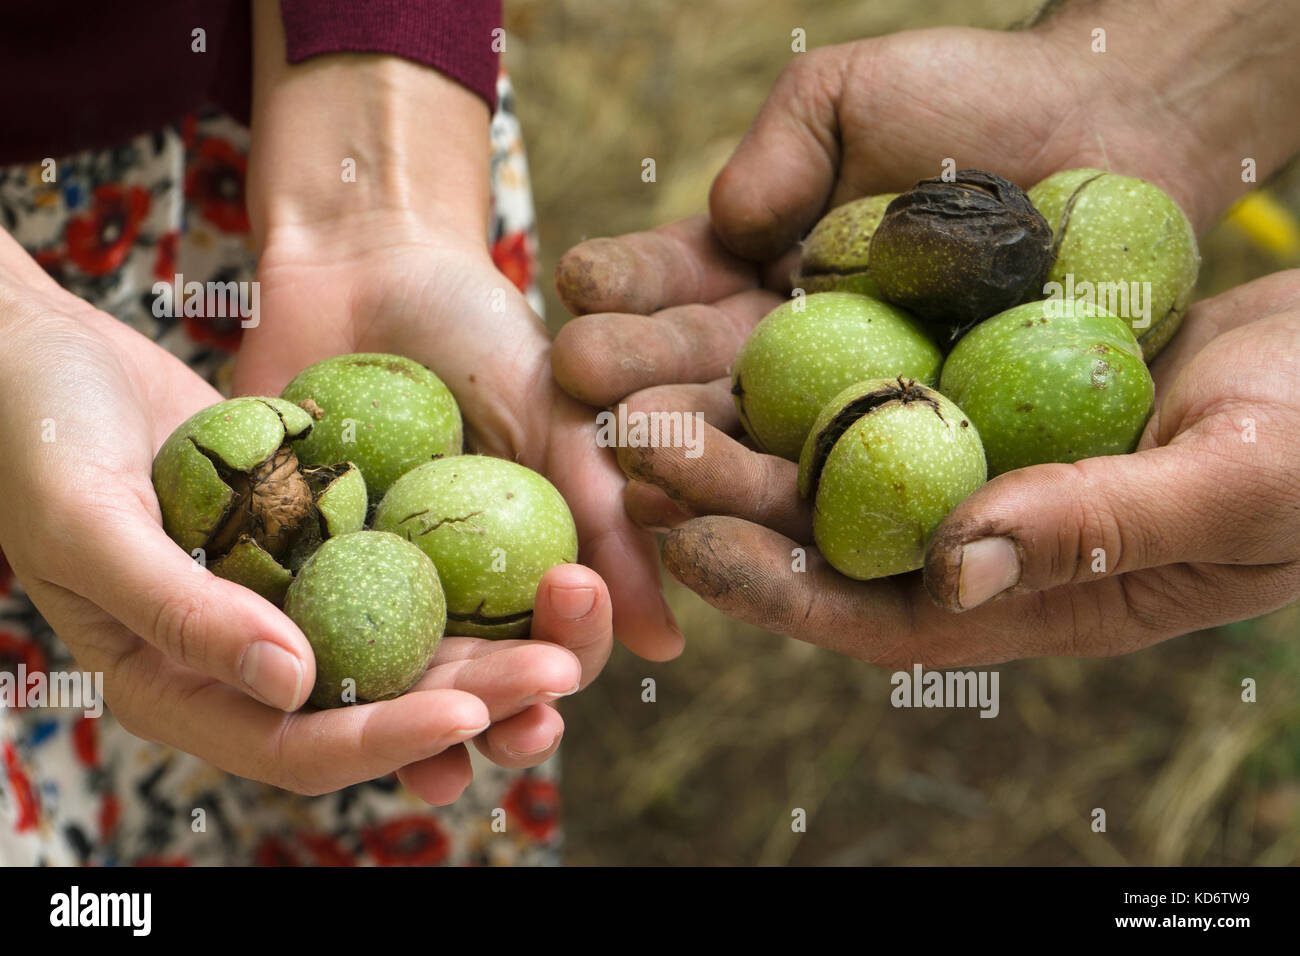 Green unpeeled walnuts in the hands of farmers top view horizontal - Stock Image